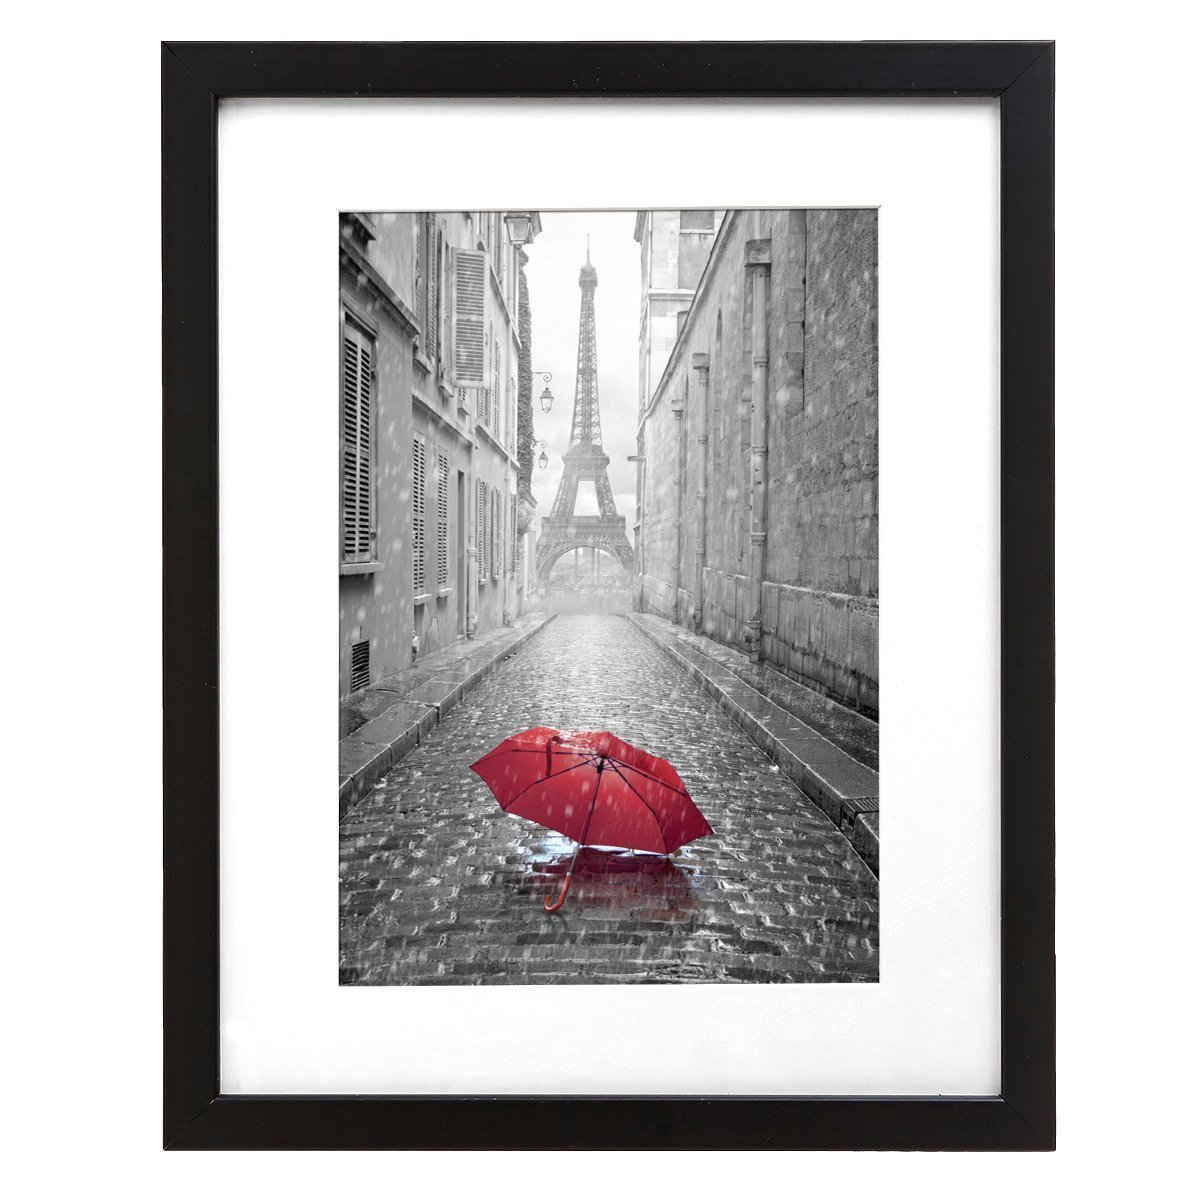 9x12-inch Black Frame - Made to Display Pictures 6x8-inches with Matte or 9x12-inches Without Matte - Camera Photography Frame